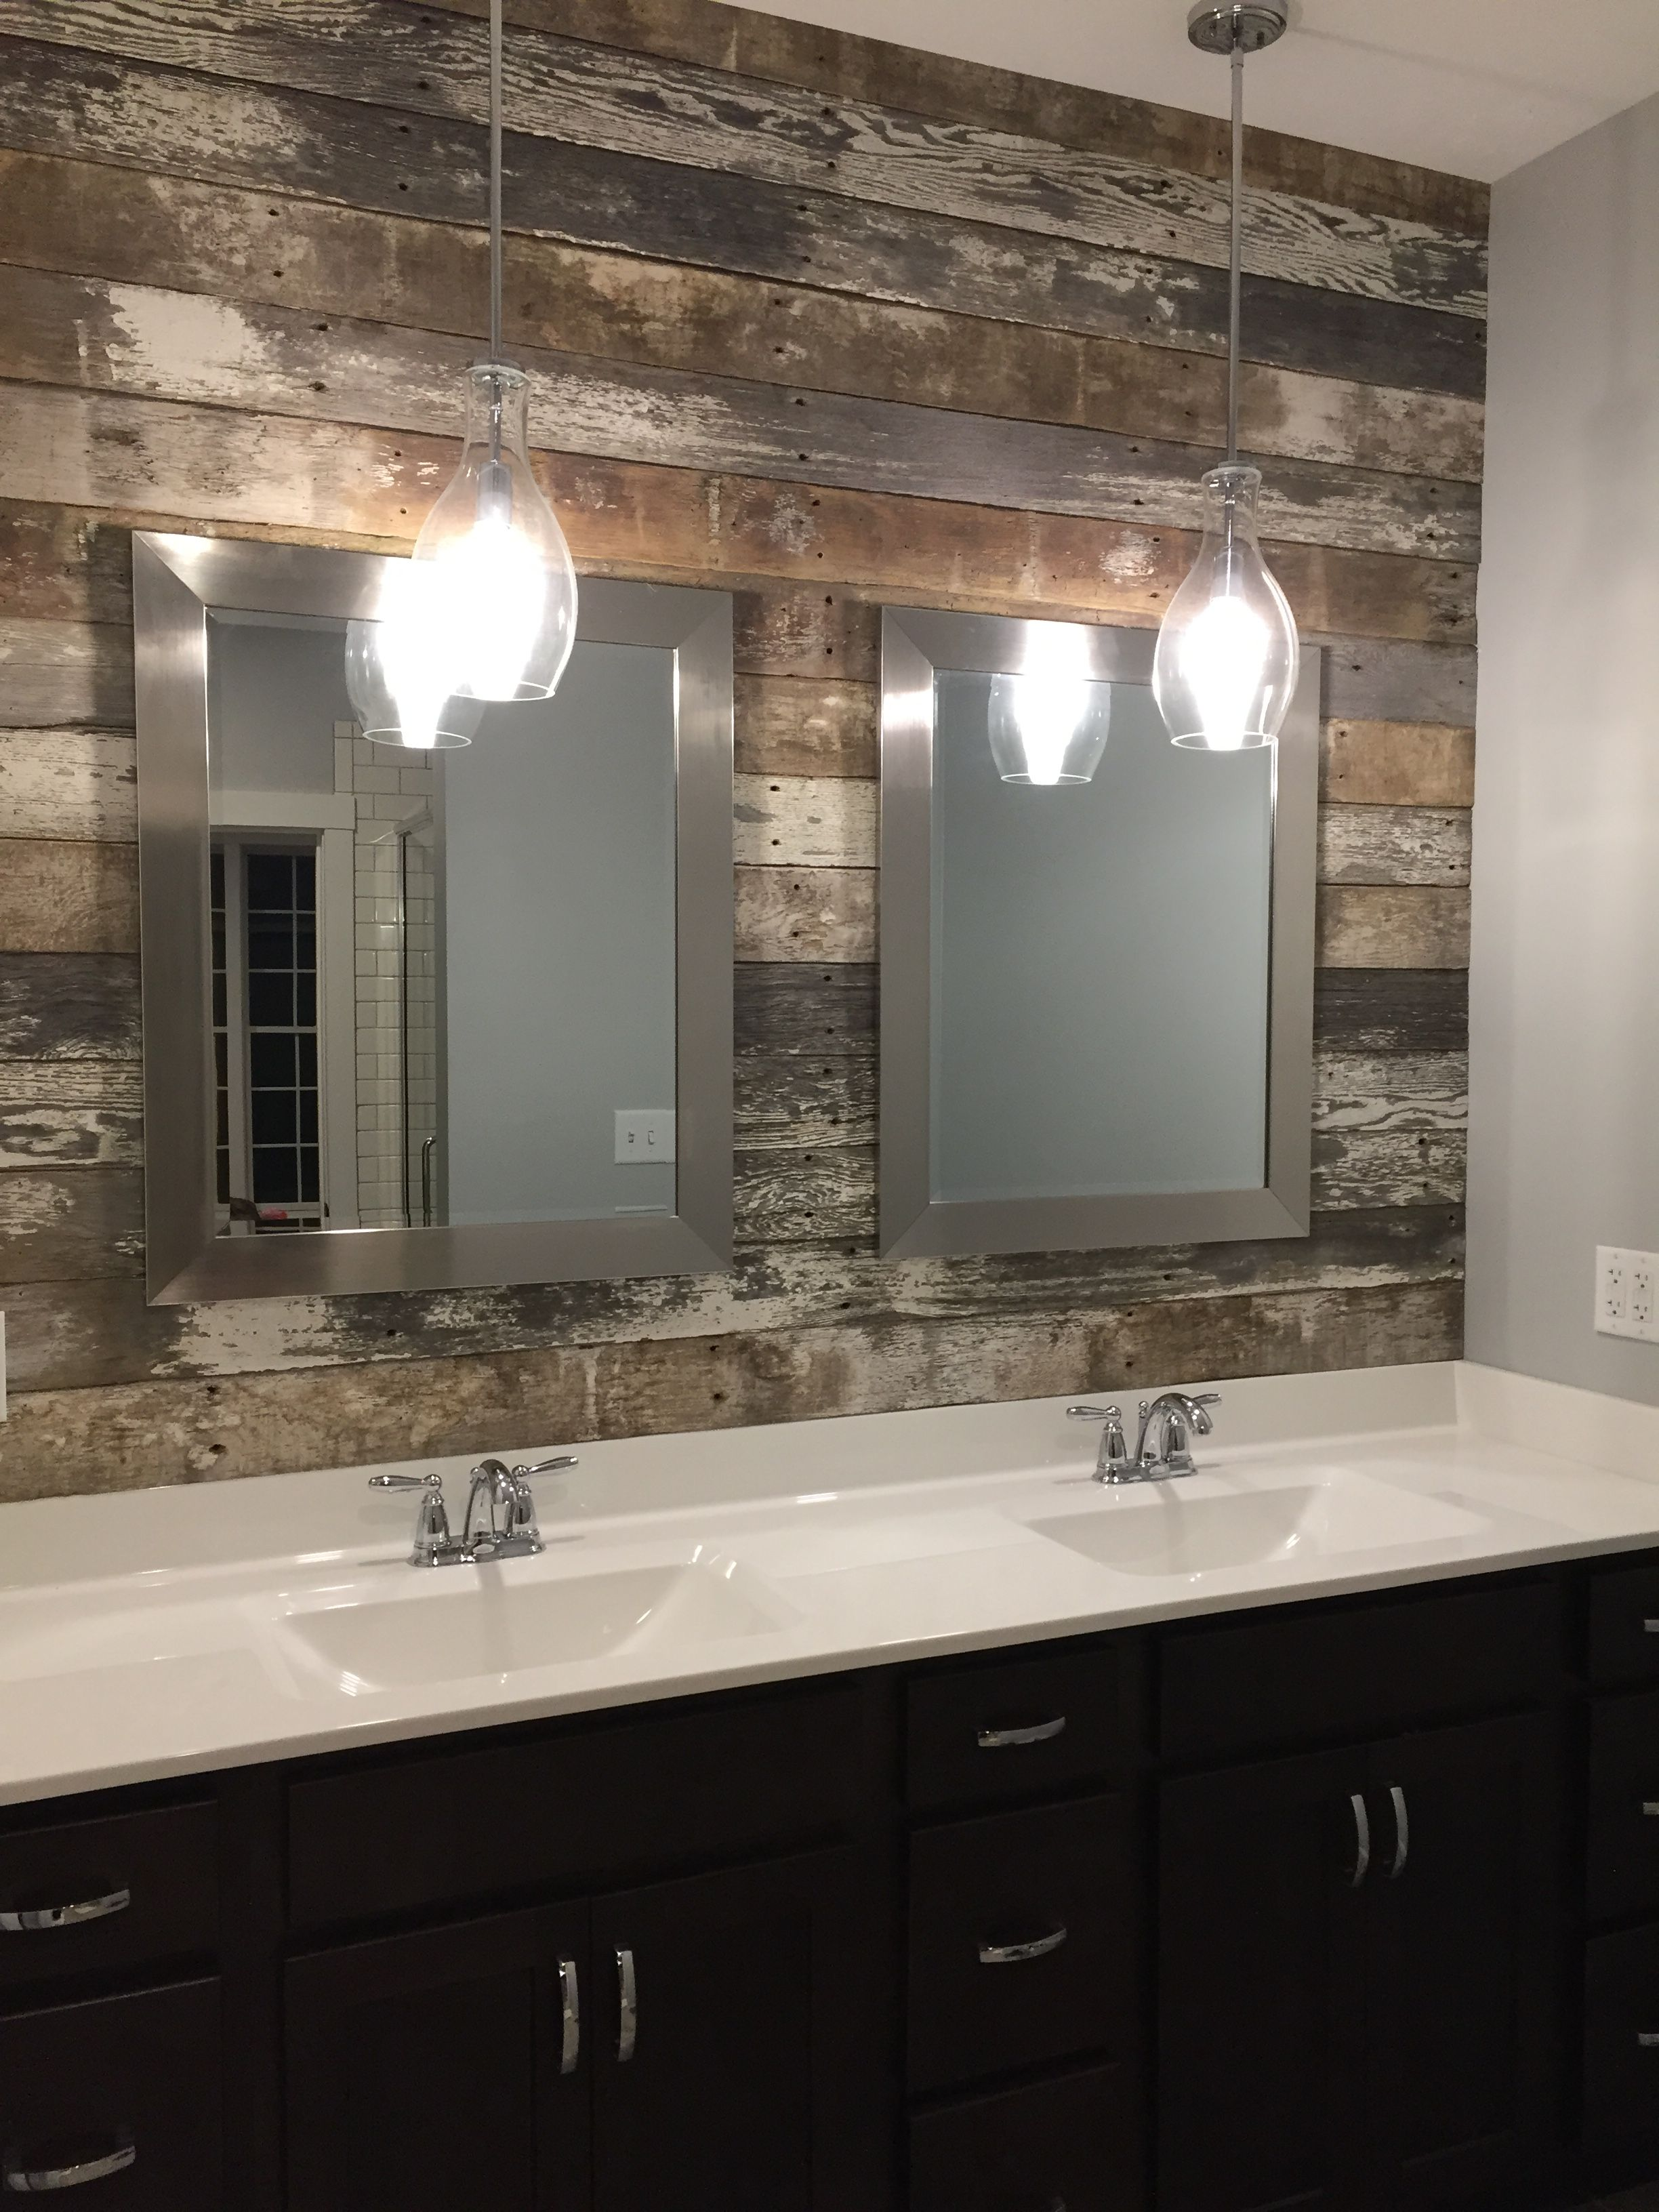 Master Bath Double Vanity Sink Barn Wood Accent Wall And Pendant